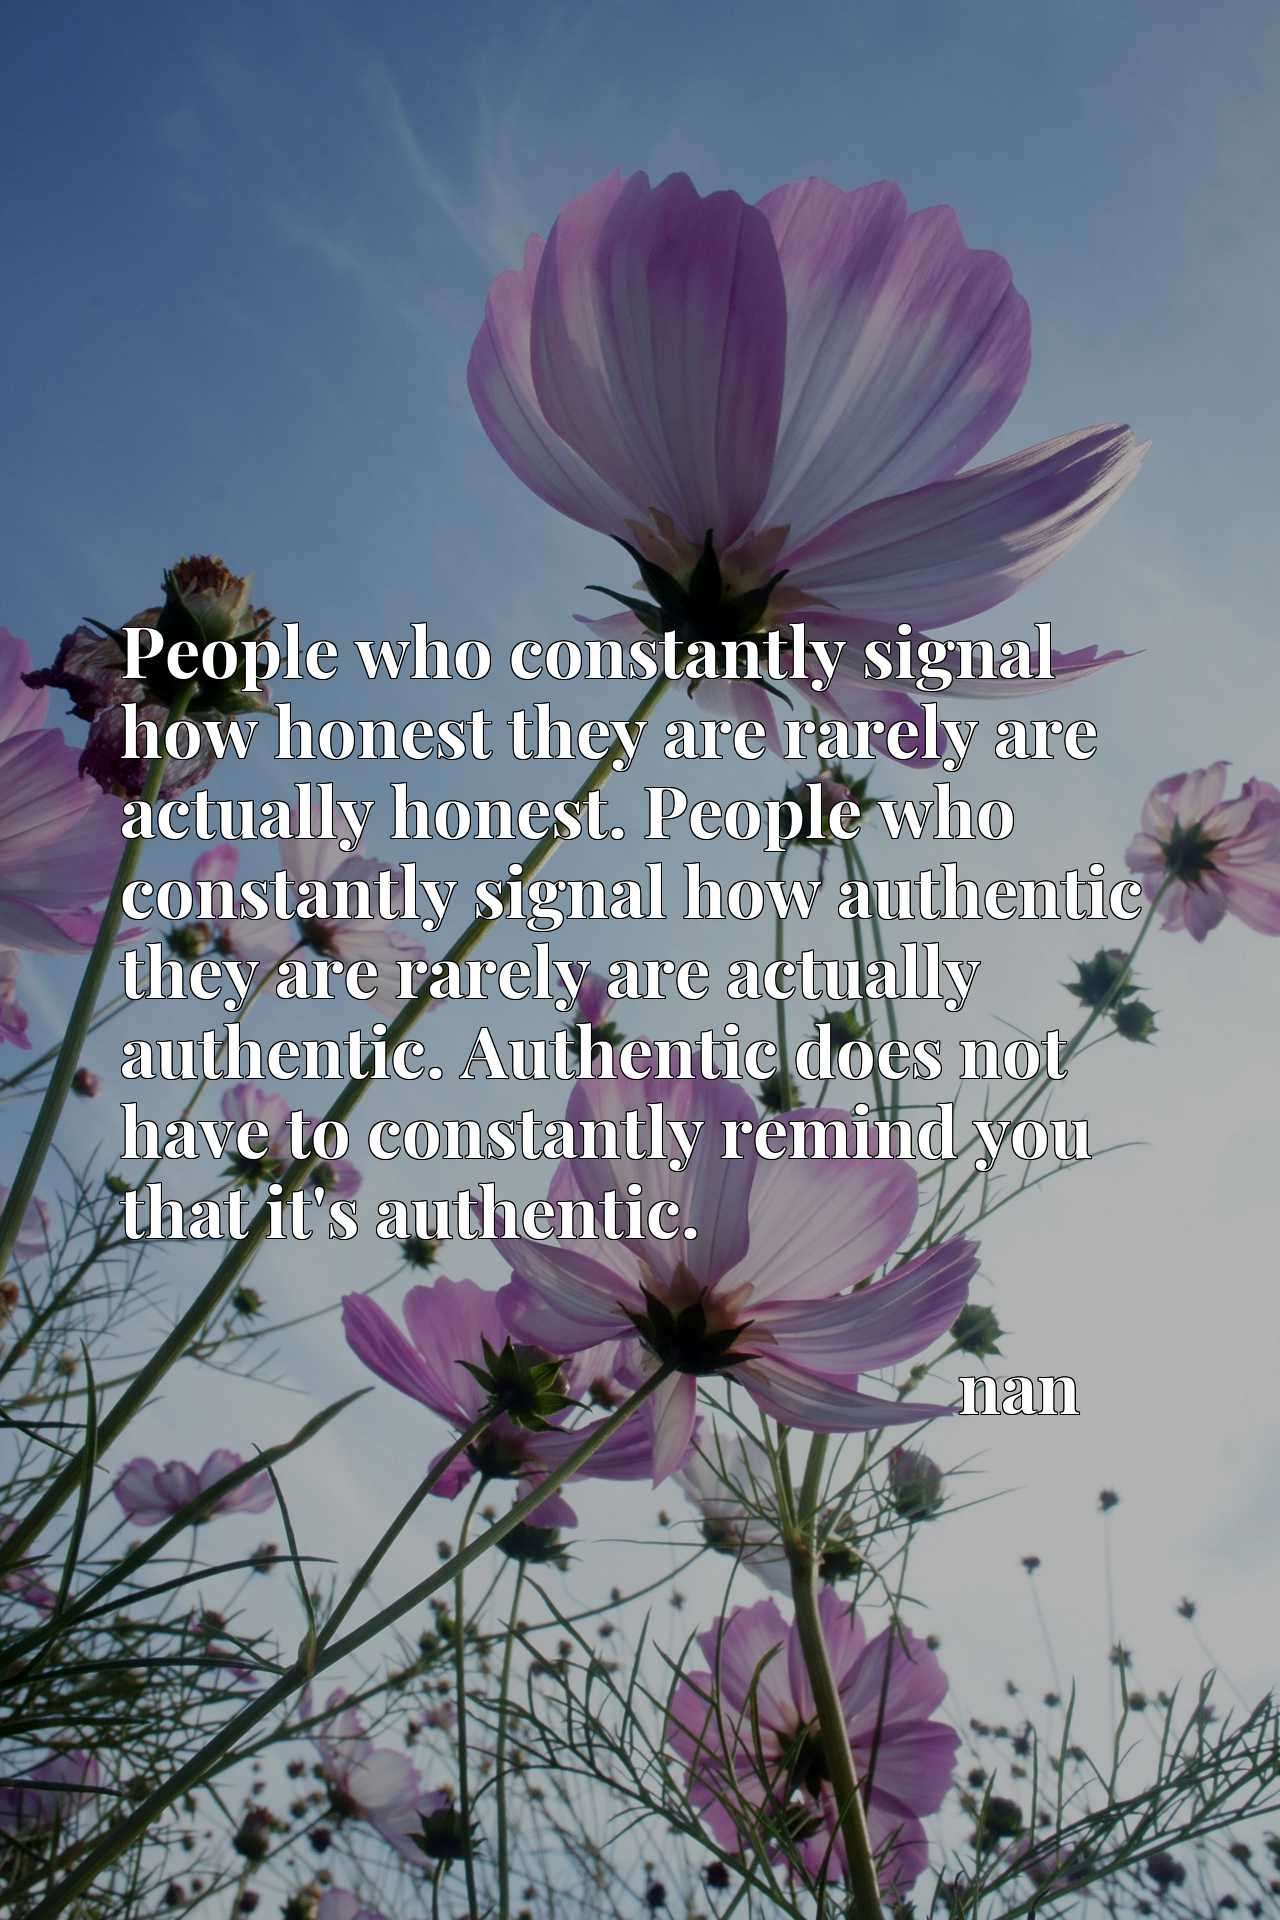 People who constantly signal how honest they are rarely are actually honest. People who constantly signal how authentic they are rarely are actually authentic. Authentic does not have to constantly remind you that it's authentic.